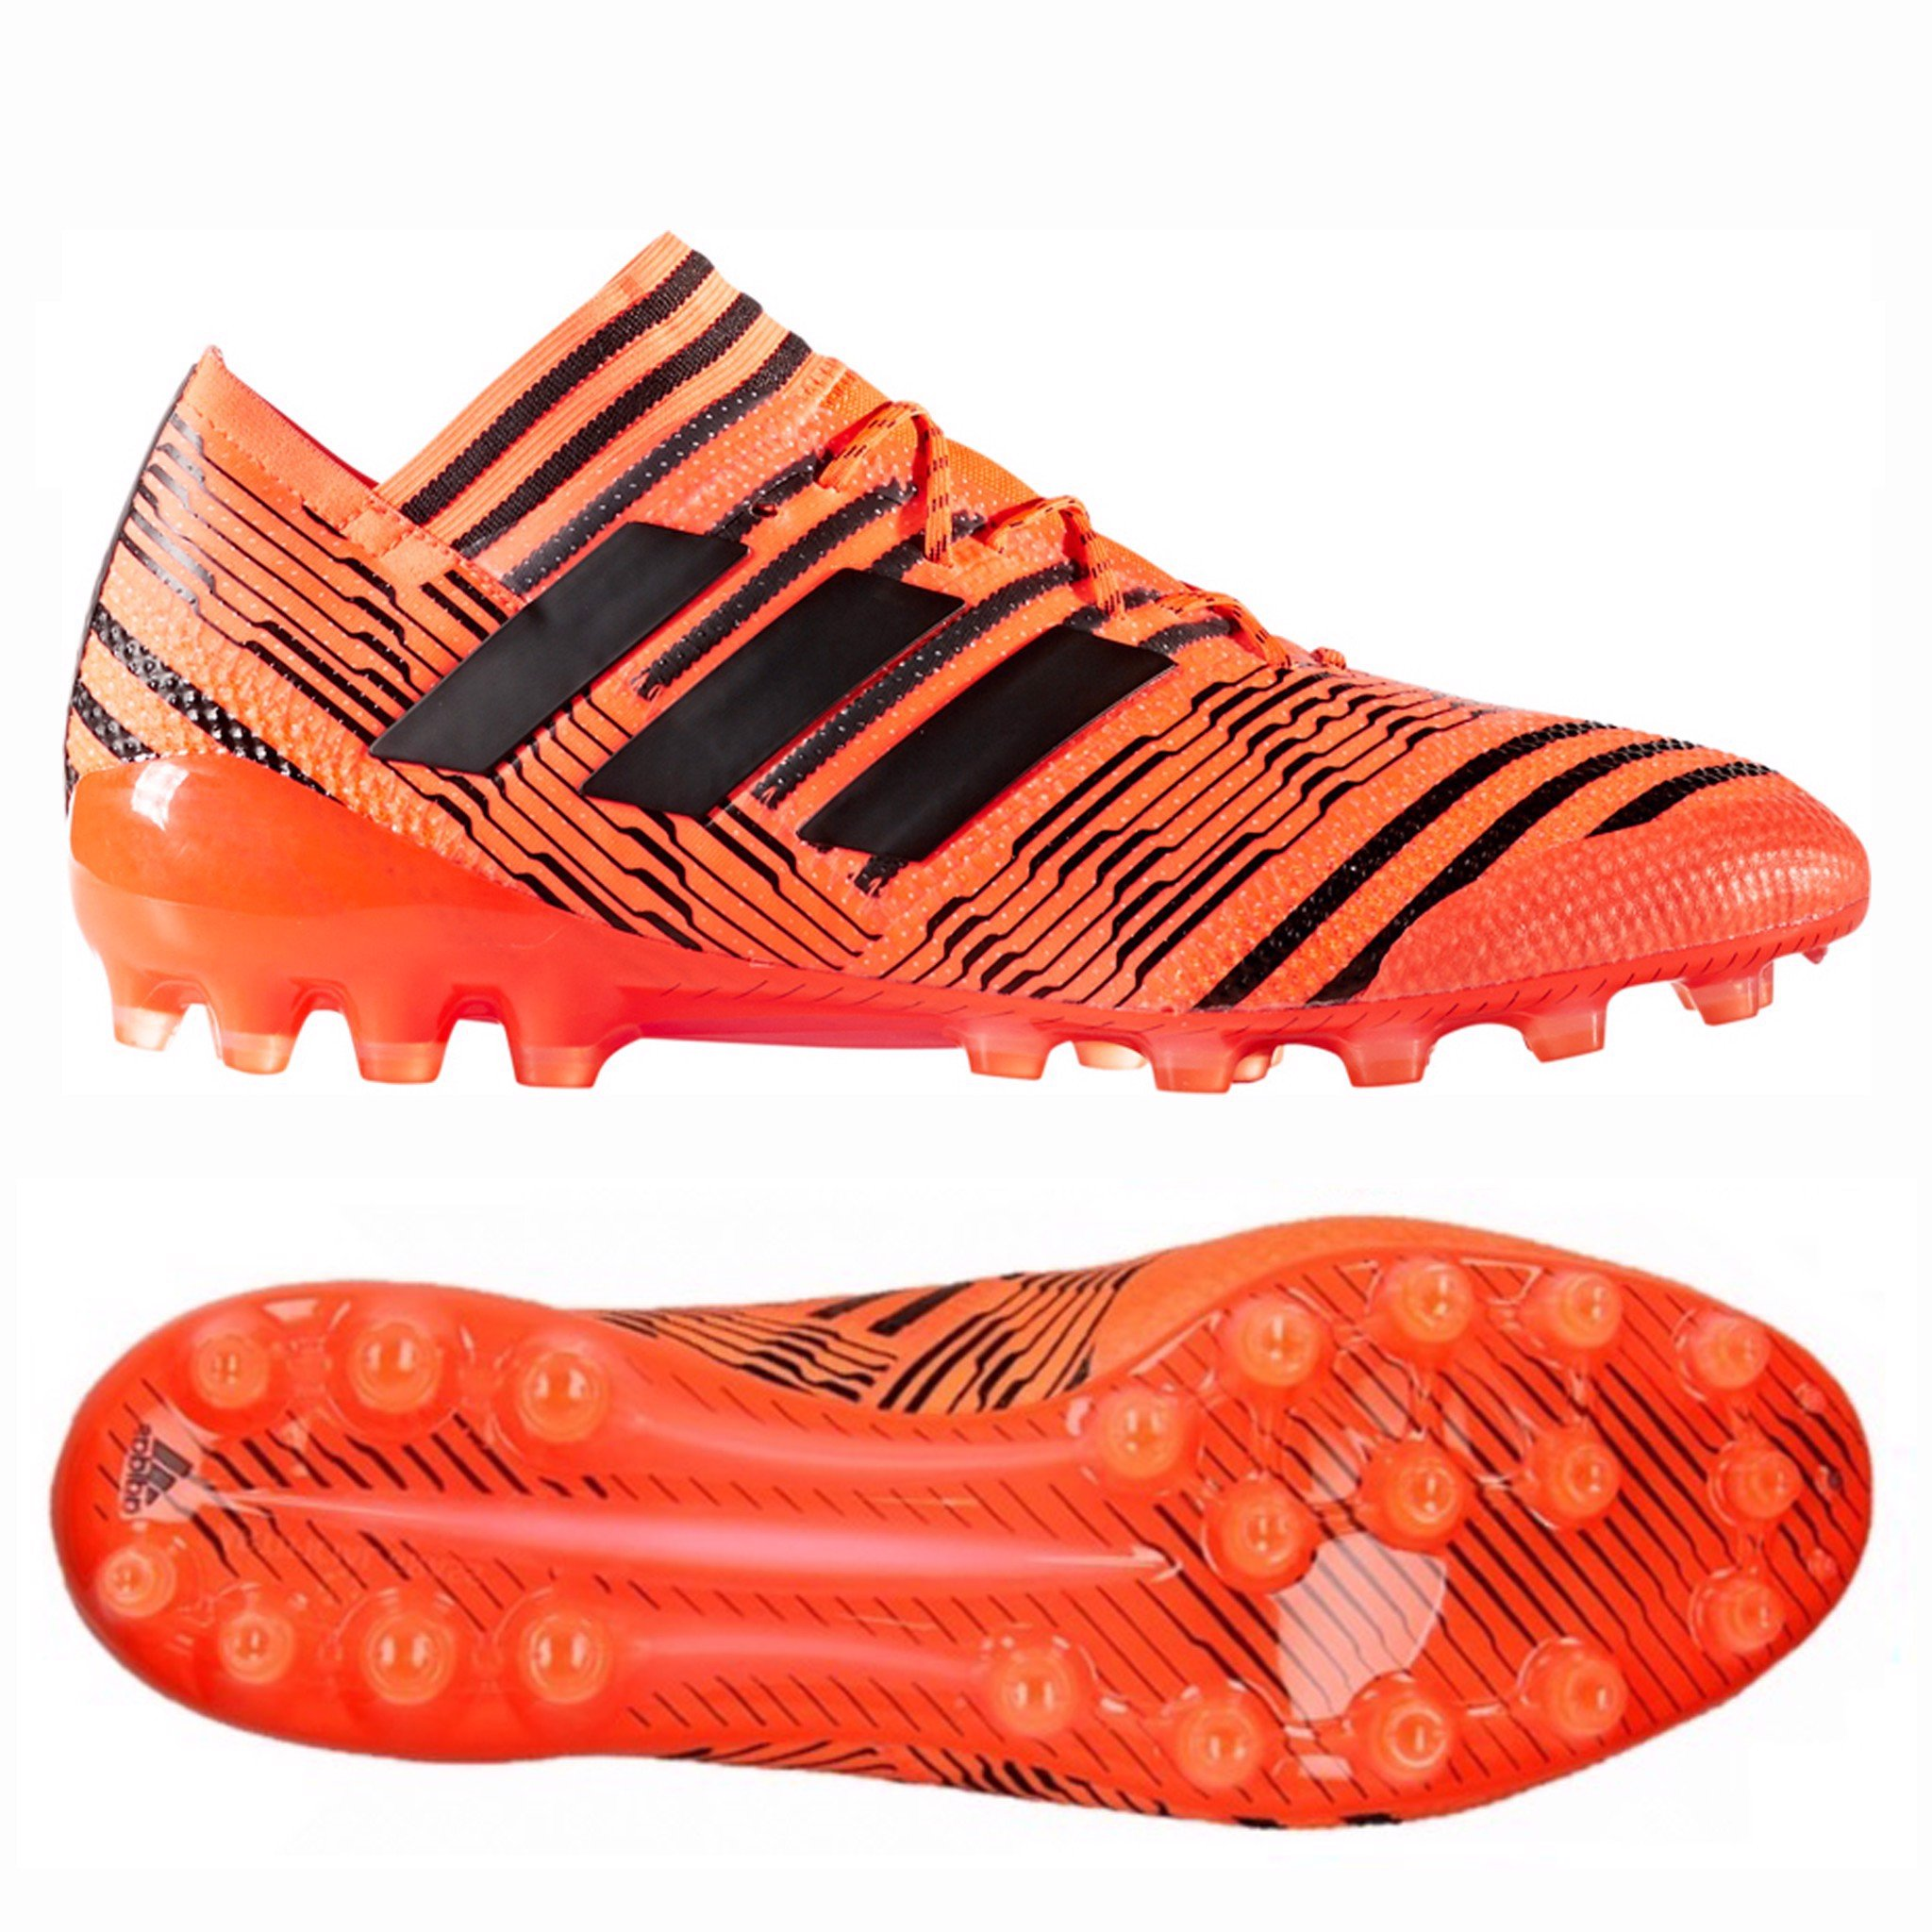 adidas Nemeziz 17.1 AG Pyro Storm - Solar Orange/Core Black/Solar Red